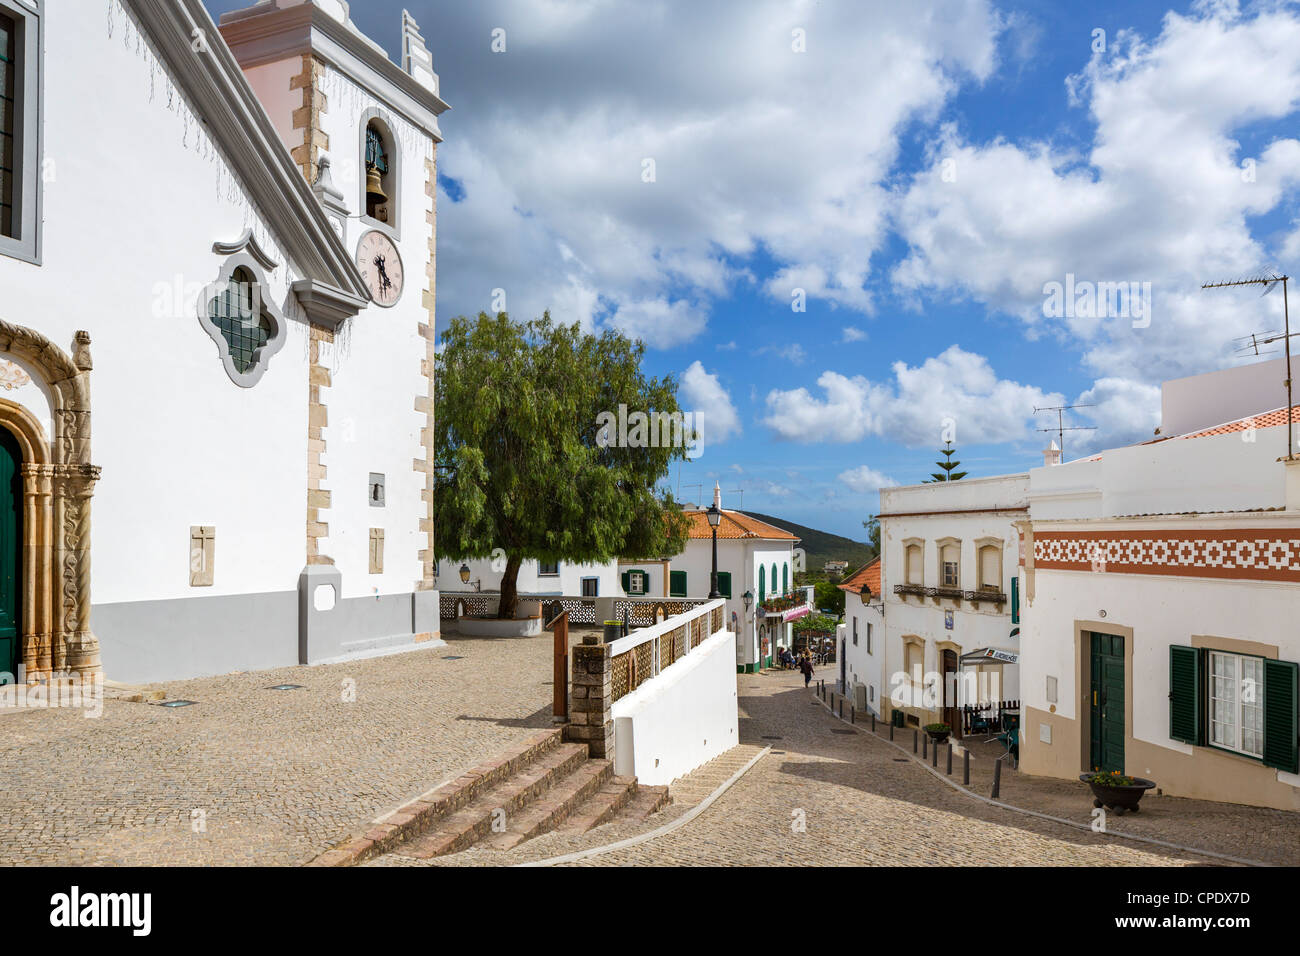 Centre of the inland village of Alte with the village church to the left, Algarve, Portugal - Stock Image